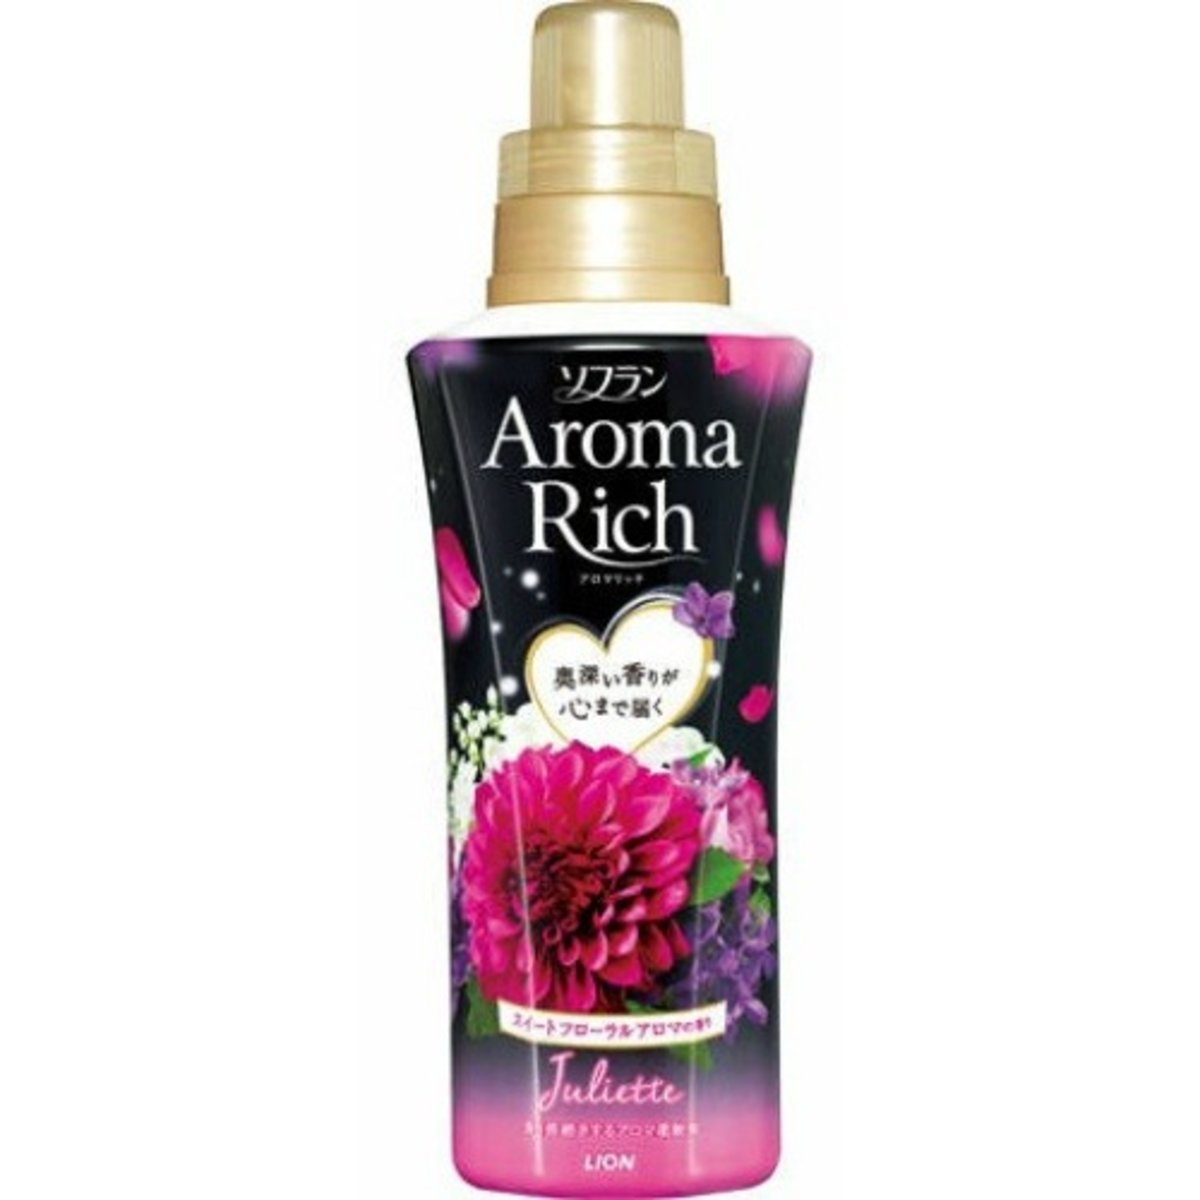 Sweet Floral Aroma 550ml [Parallel Import Product]    [Parallel Import Product]